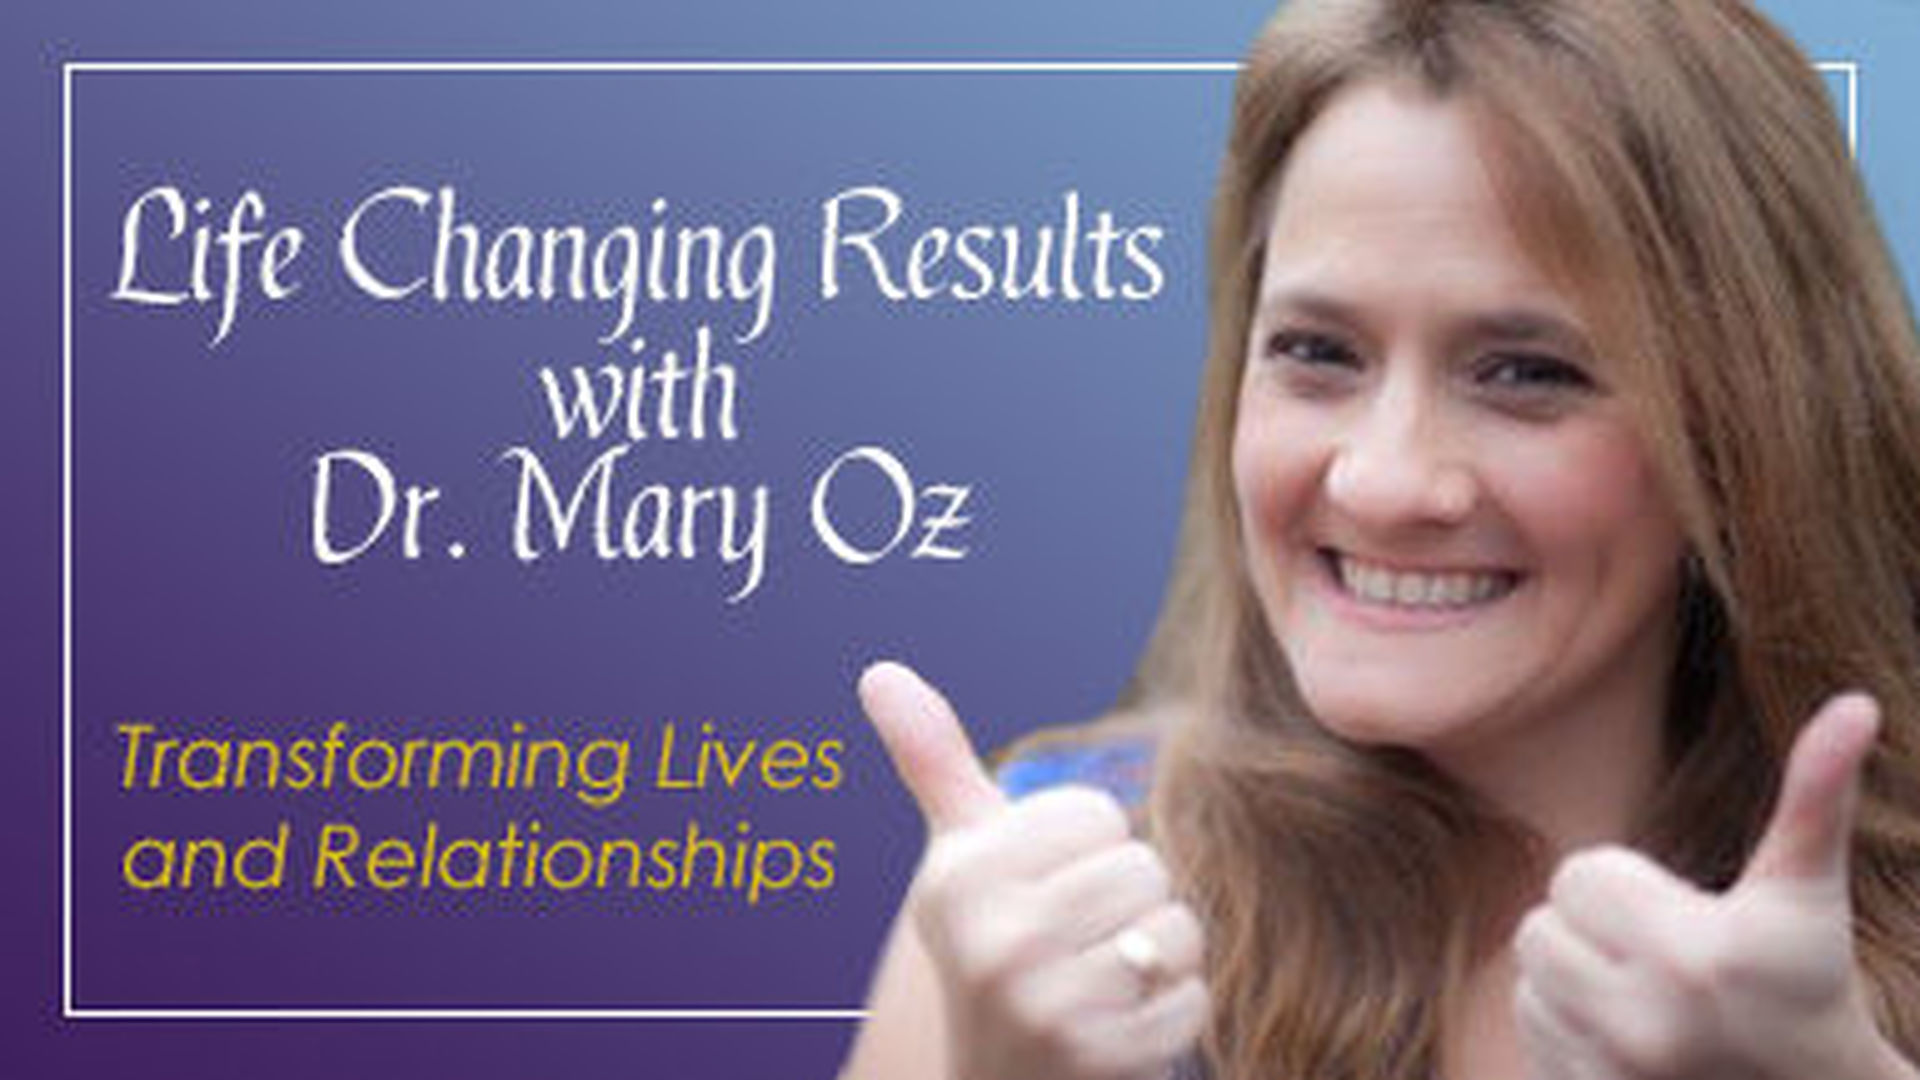 Welcome to Life Changing Results with Dr. Mary Oz